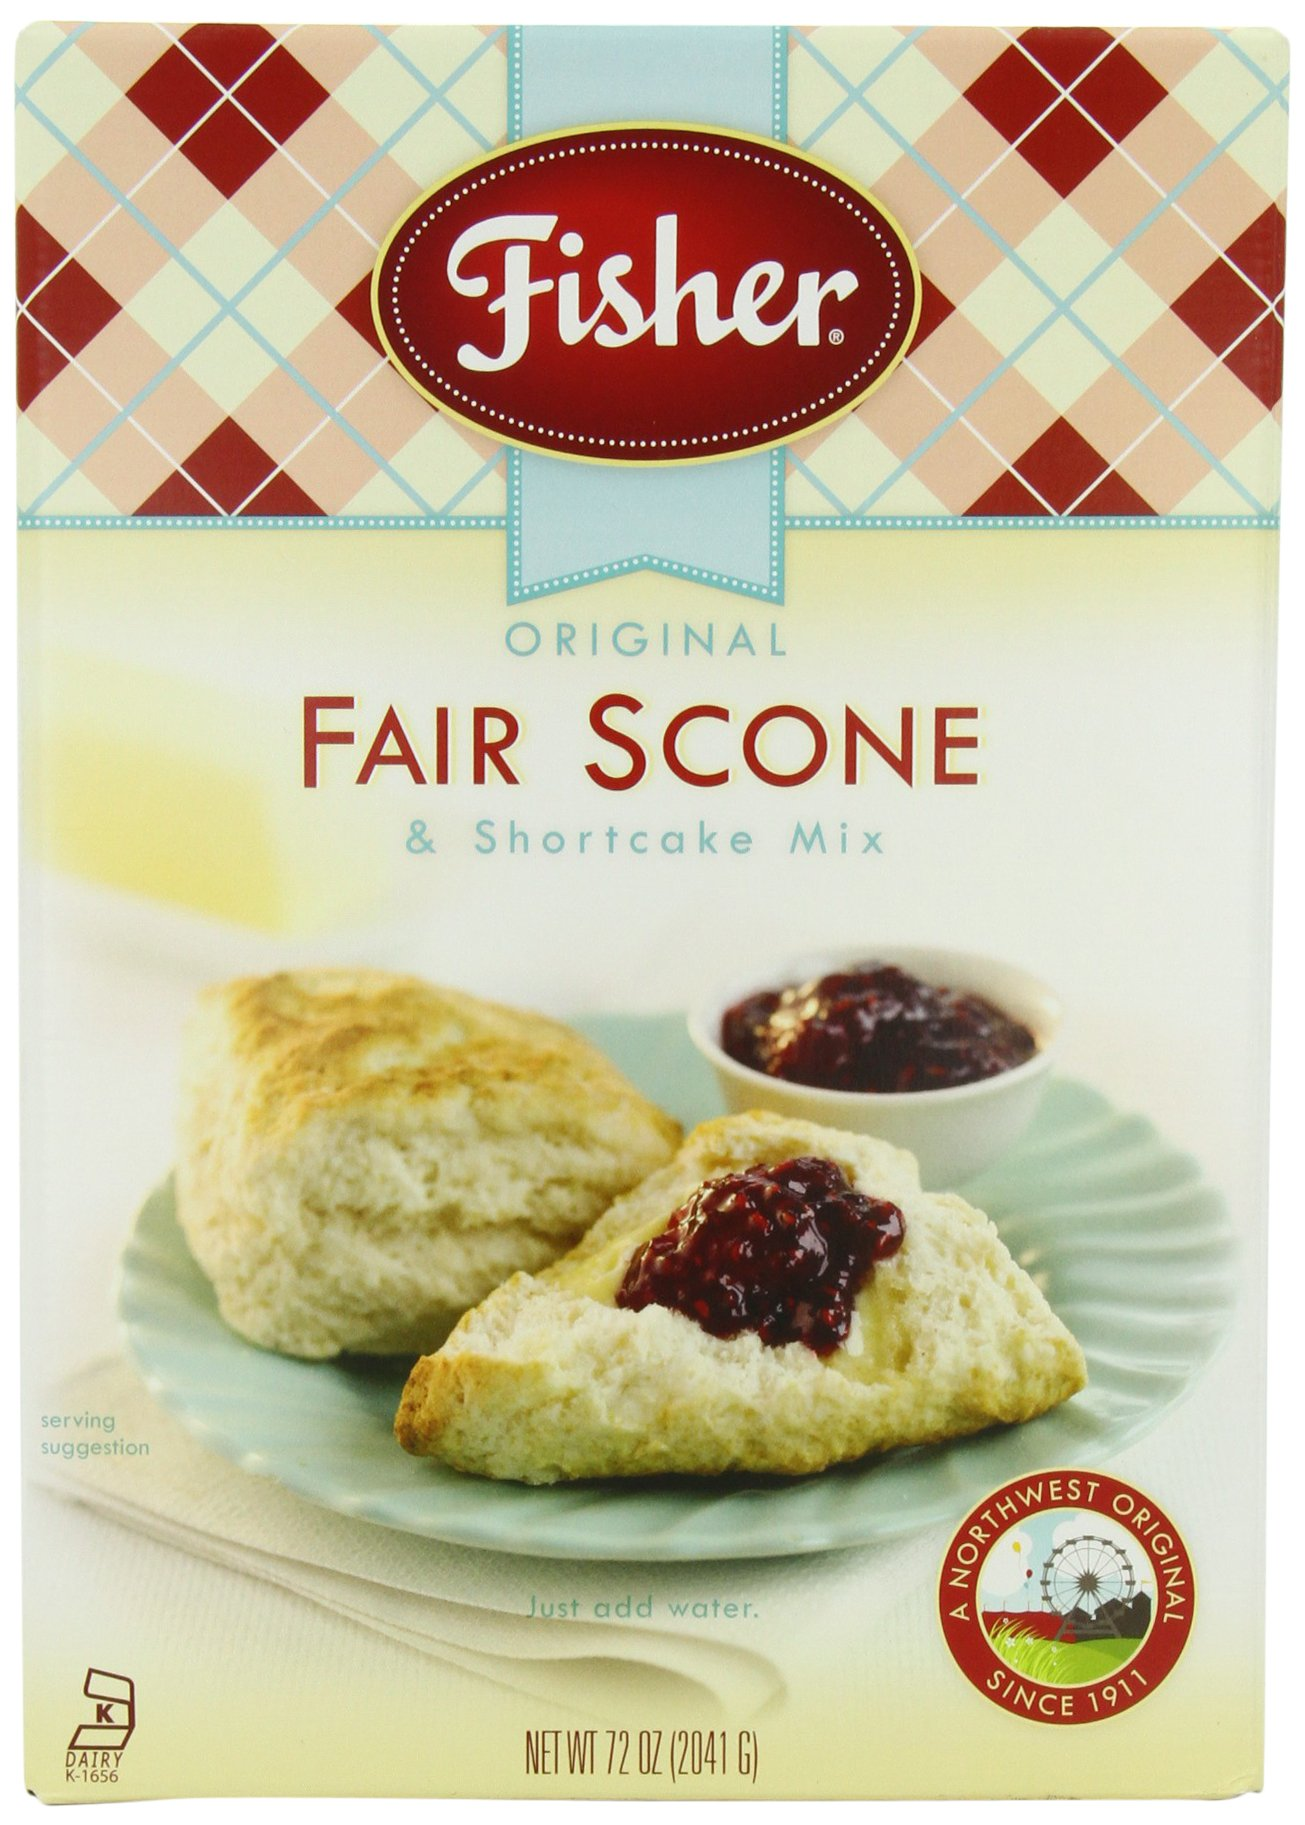 Fisher Original Fair Scone & Shortcake Mix, 72-Ounce Box